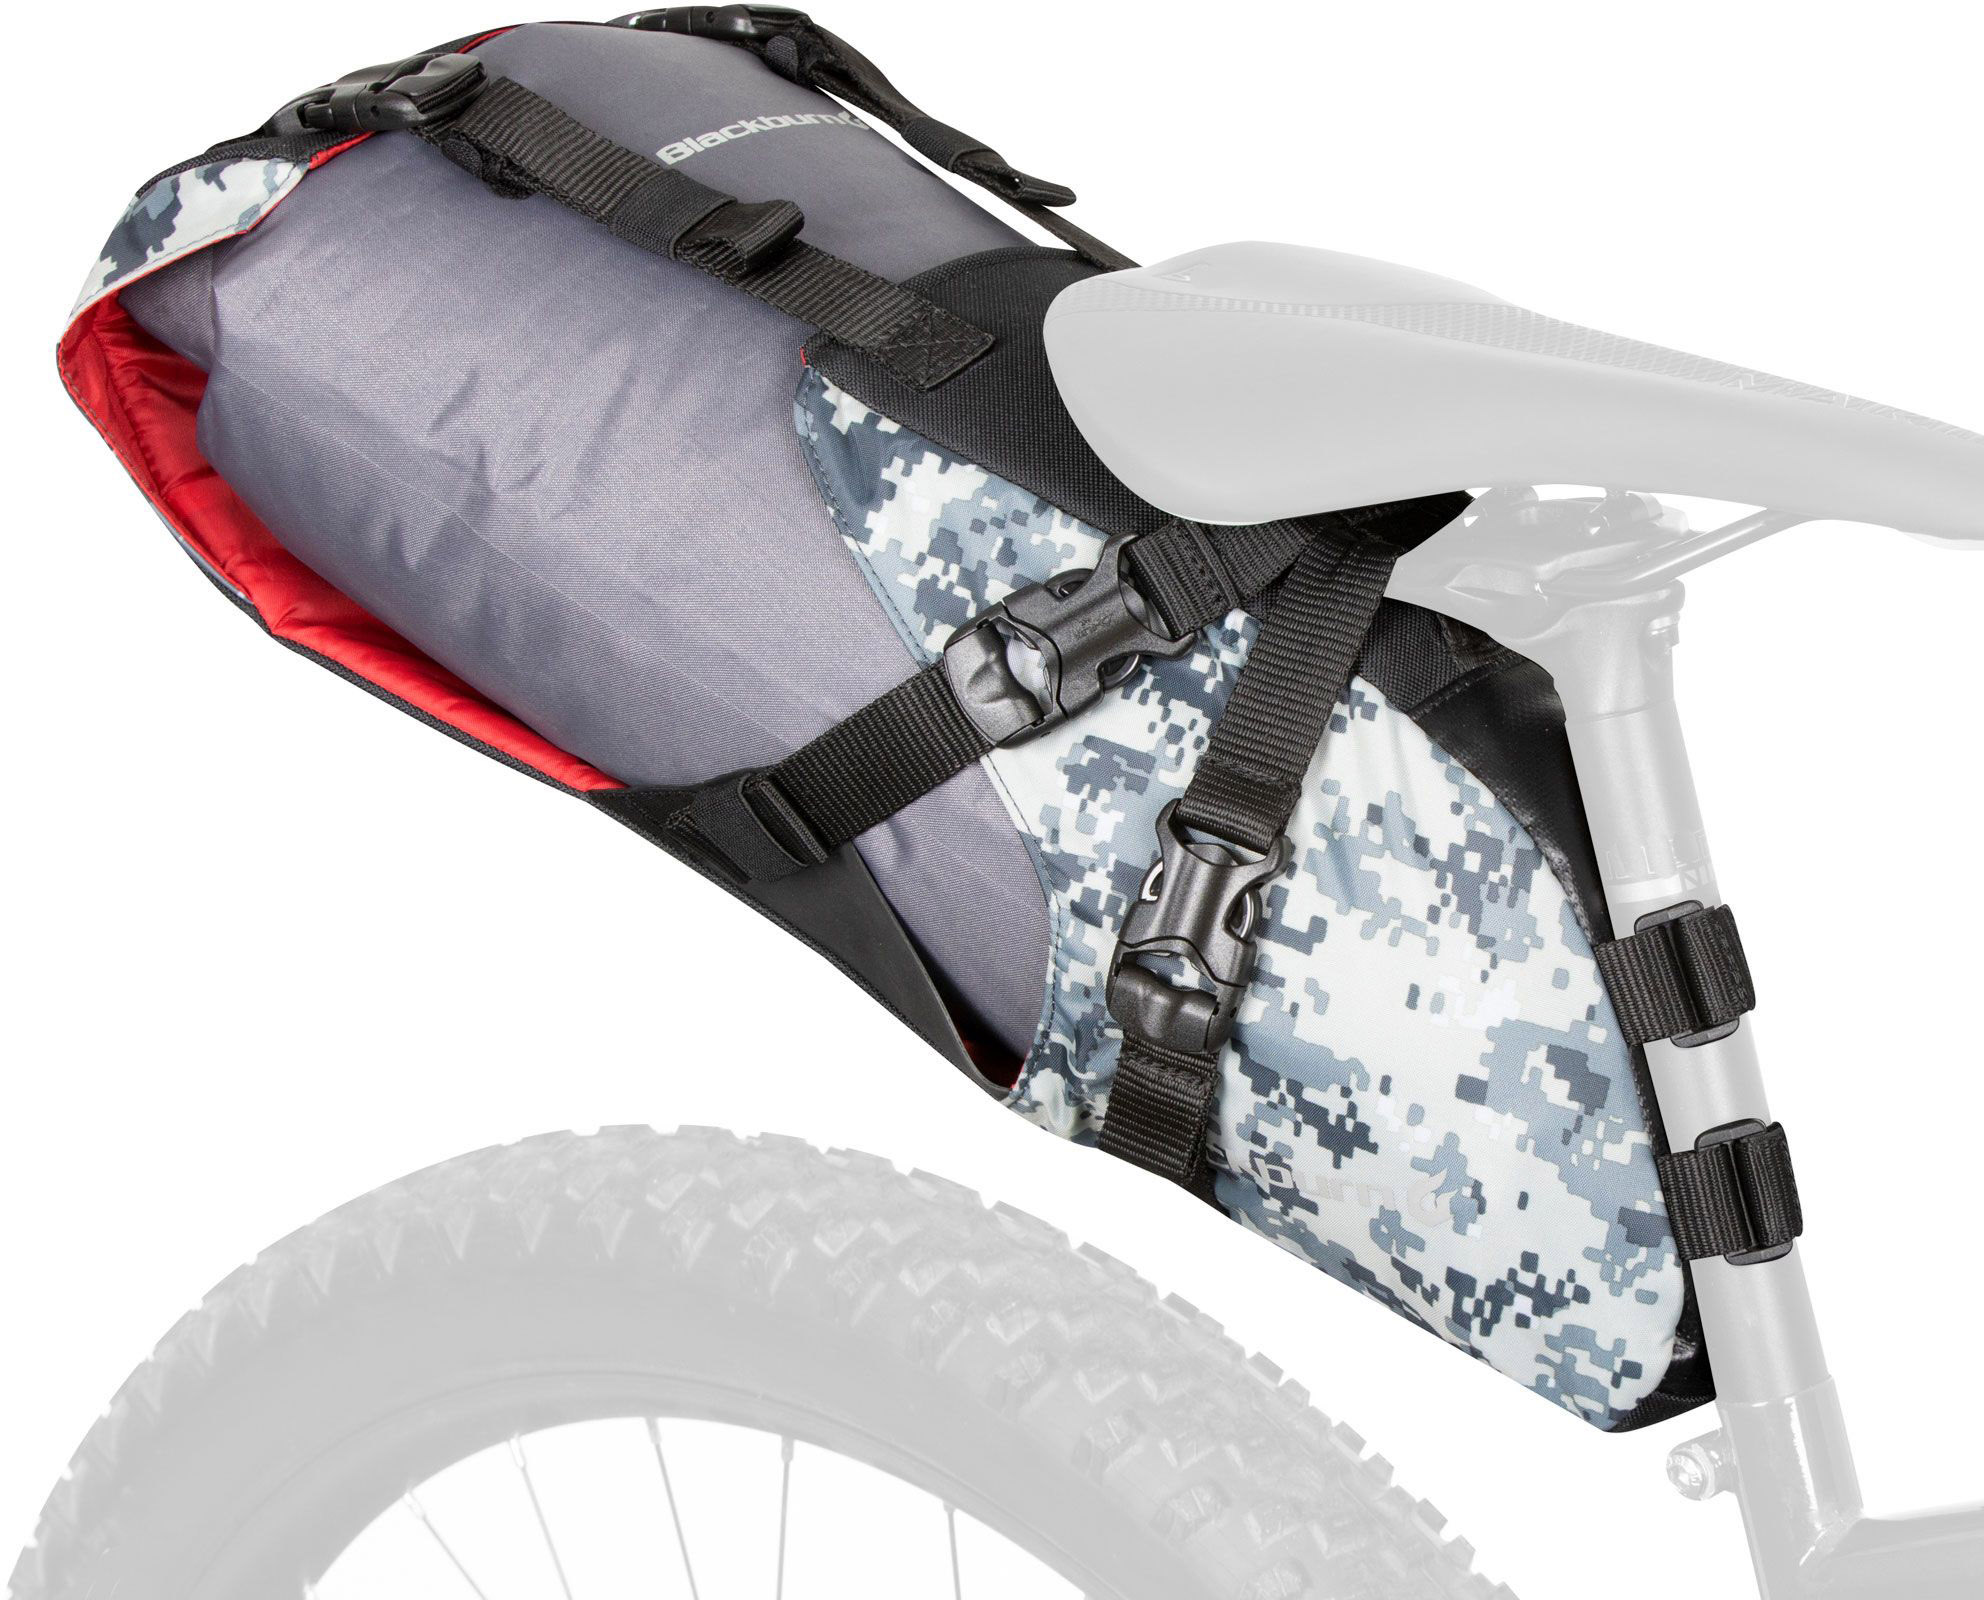 Blackburn Outpost Seatpack - Ltd Edition | Bike bags